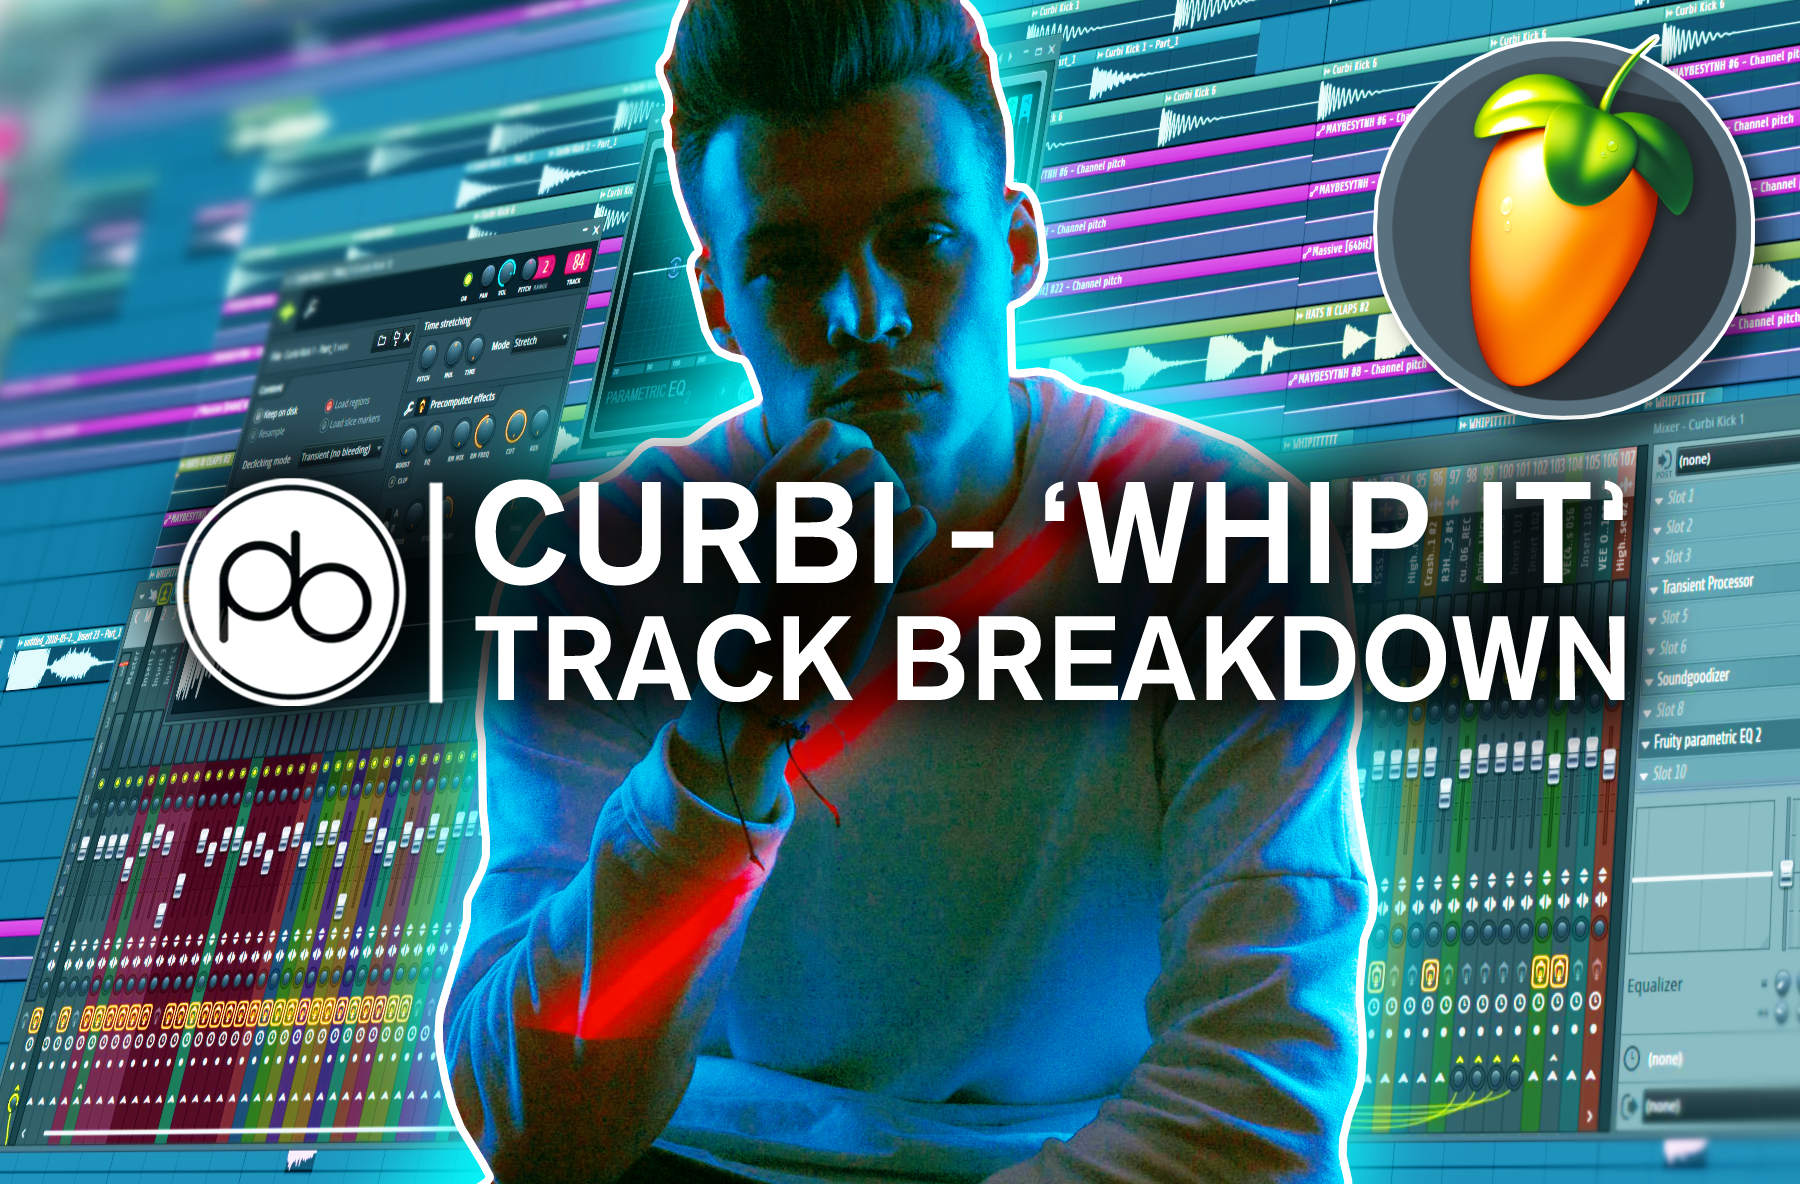 Watch Spinnin' Records Whizz-Kid Curbi Breakdown His Track 'Whip It'